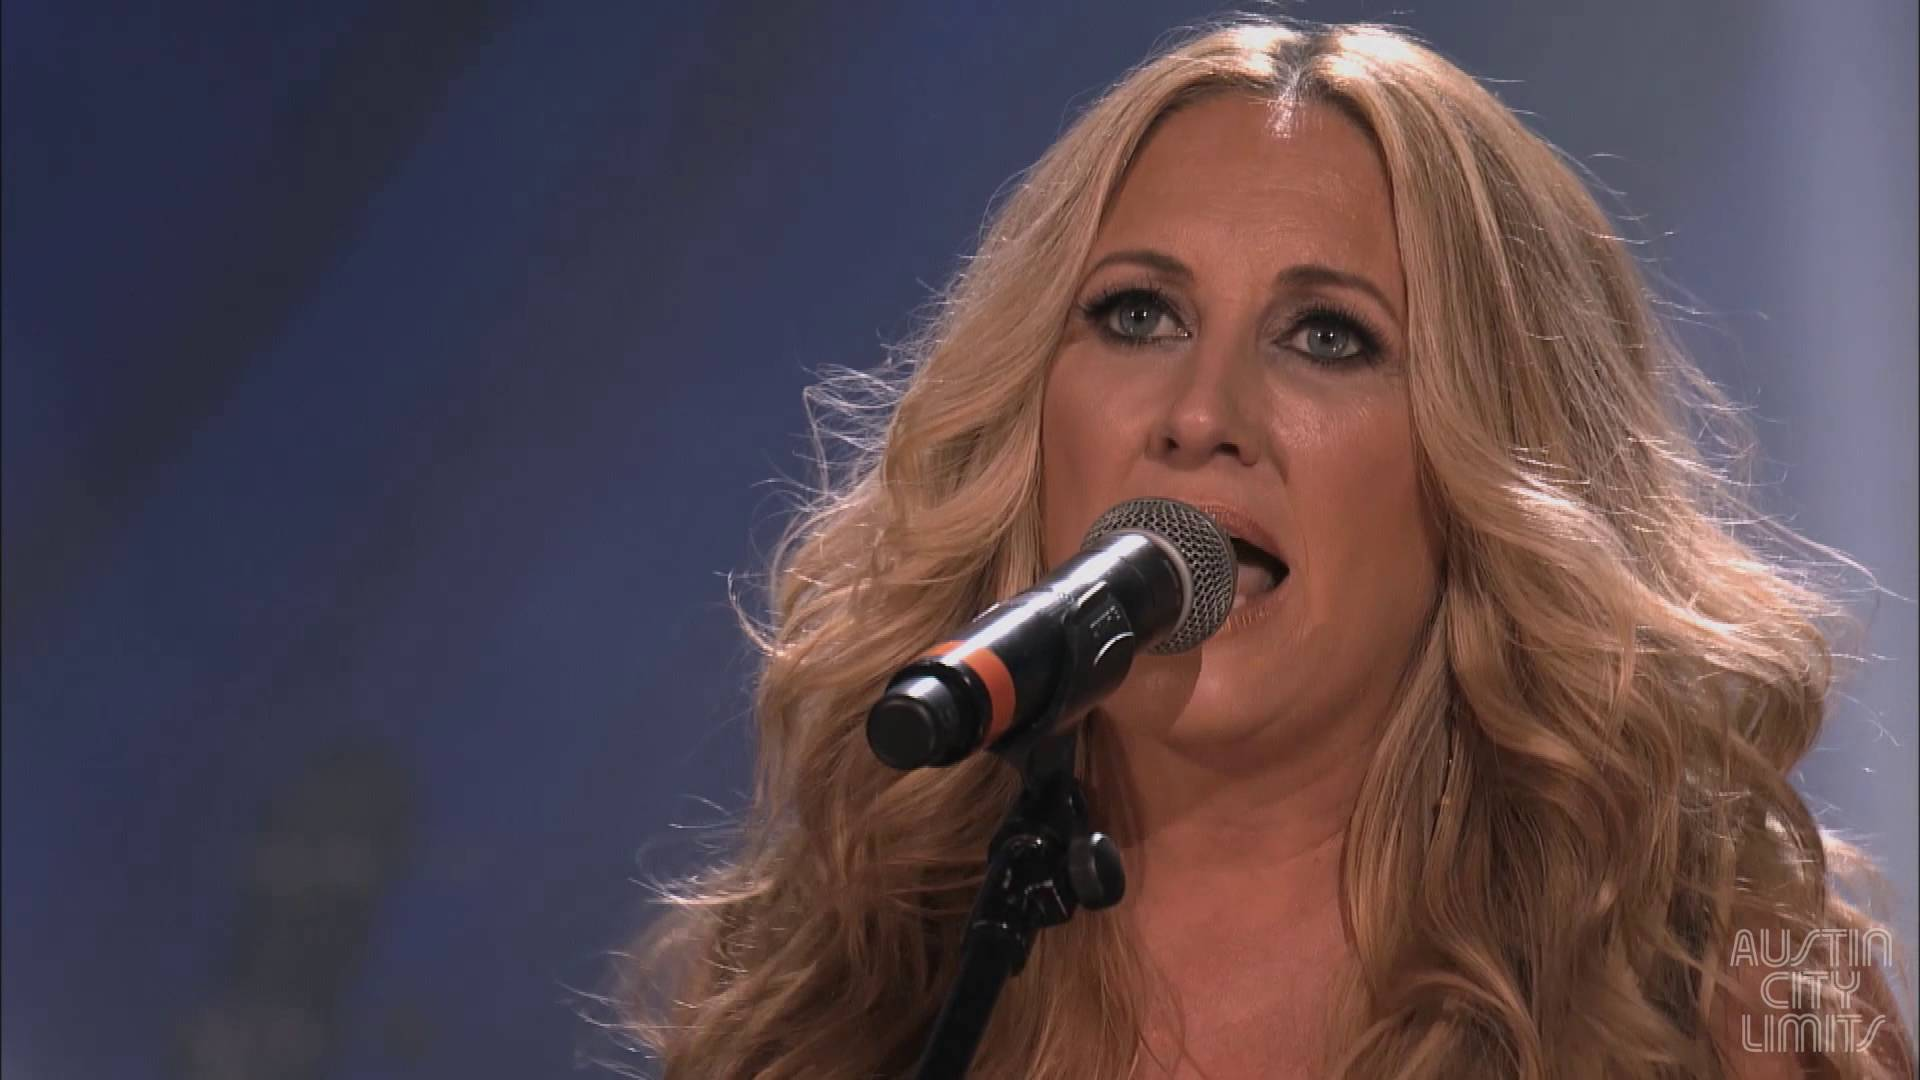 Americanafest 2018 initial lineup headed by Lee Ann Womack, Nitty Gritty Dirt Band